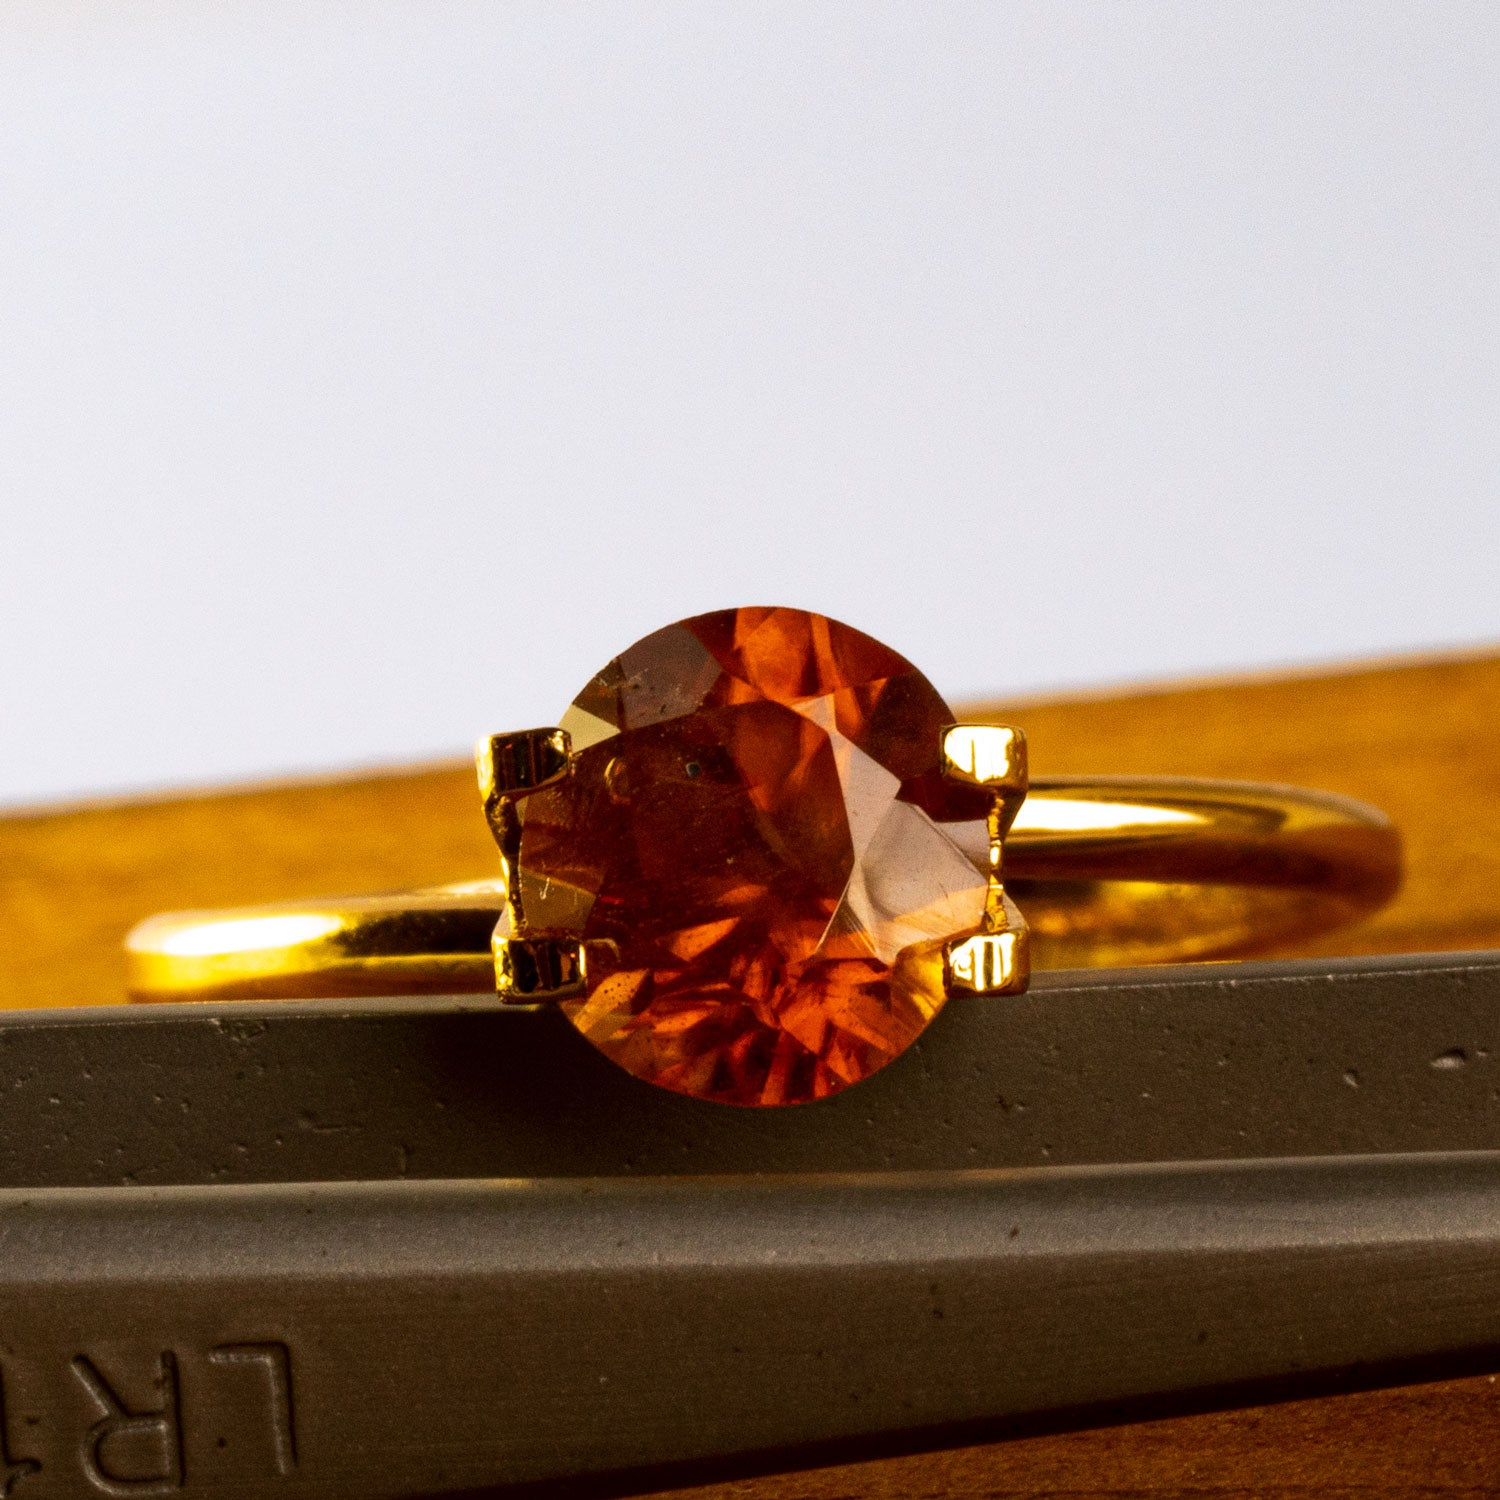 This warm toned natural zircon has a burnt amber feel about its colour